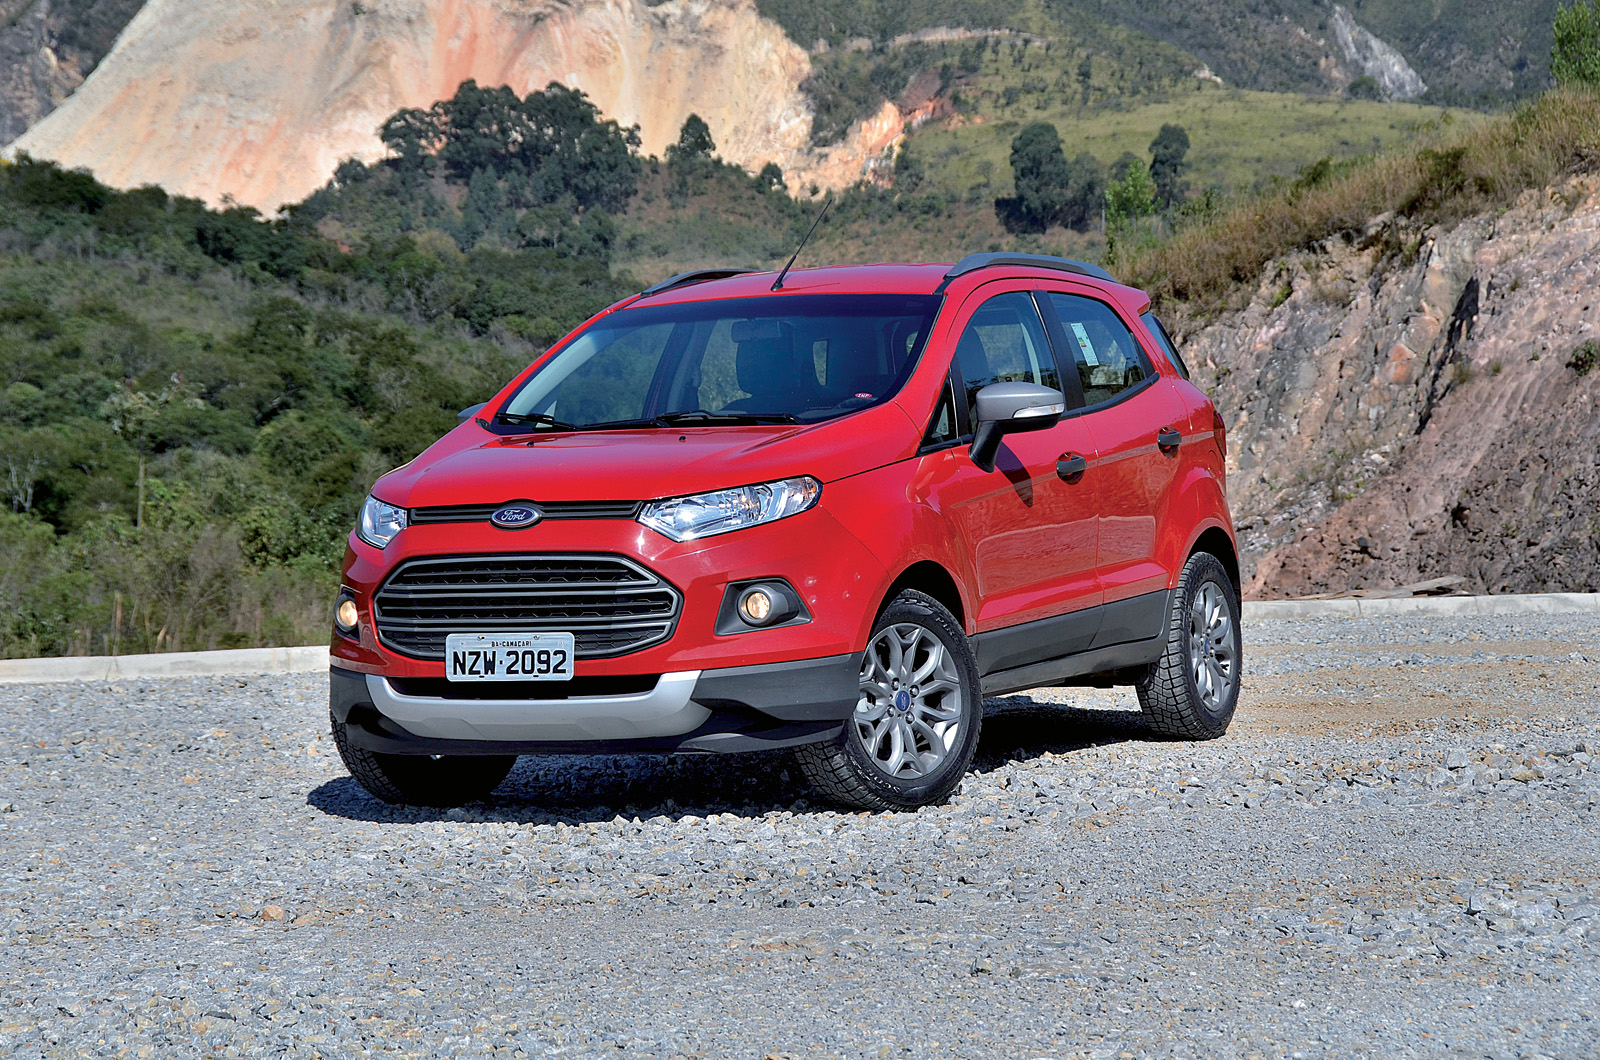 Ford Ecosport will be fitted with a 1.0-litre Ecoboost engine